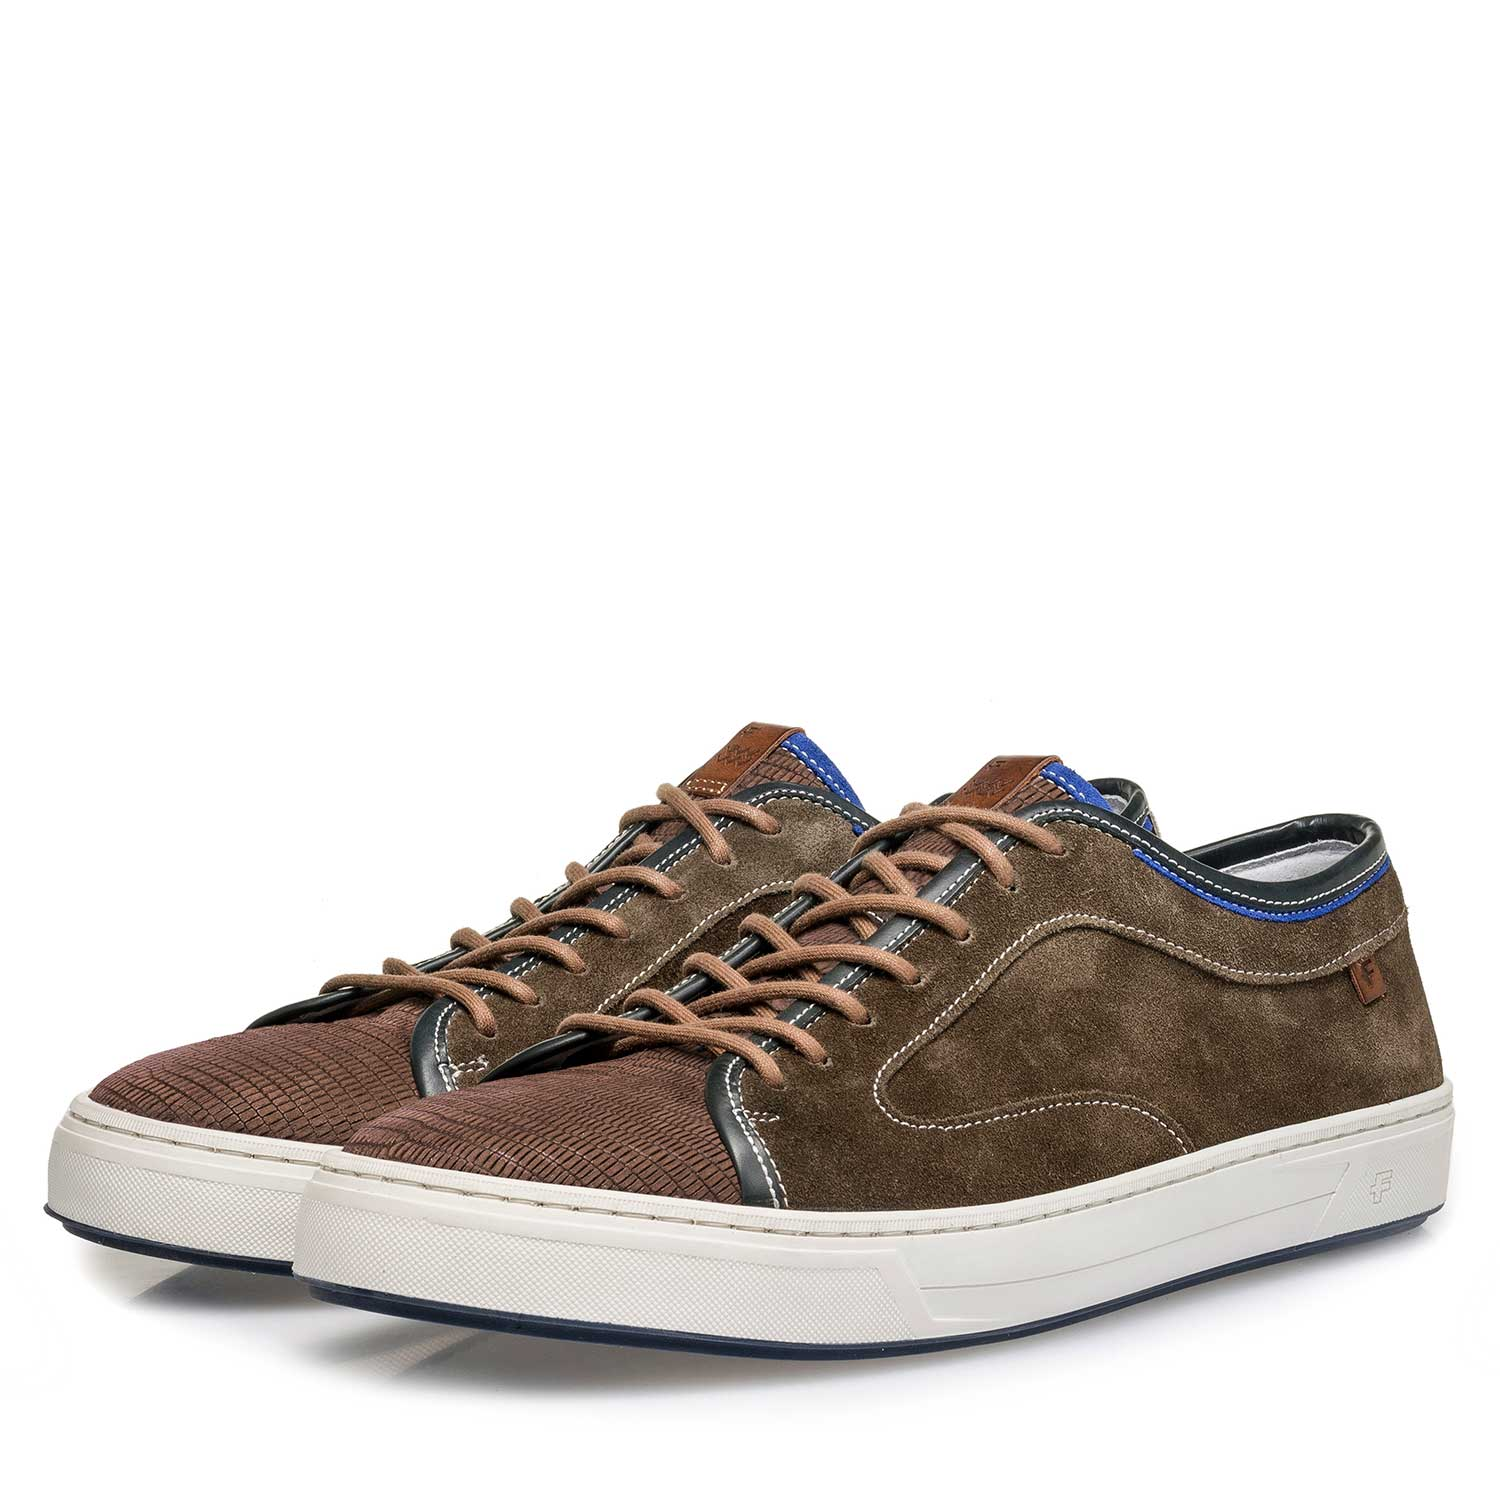 13466/09 - Dark brown calf suede leather sneaker with a lizard print